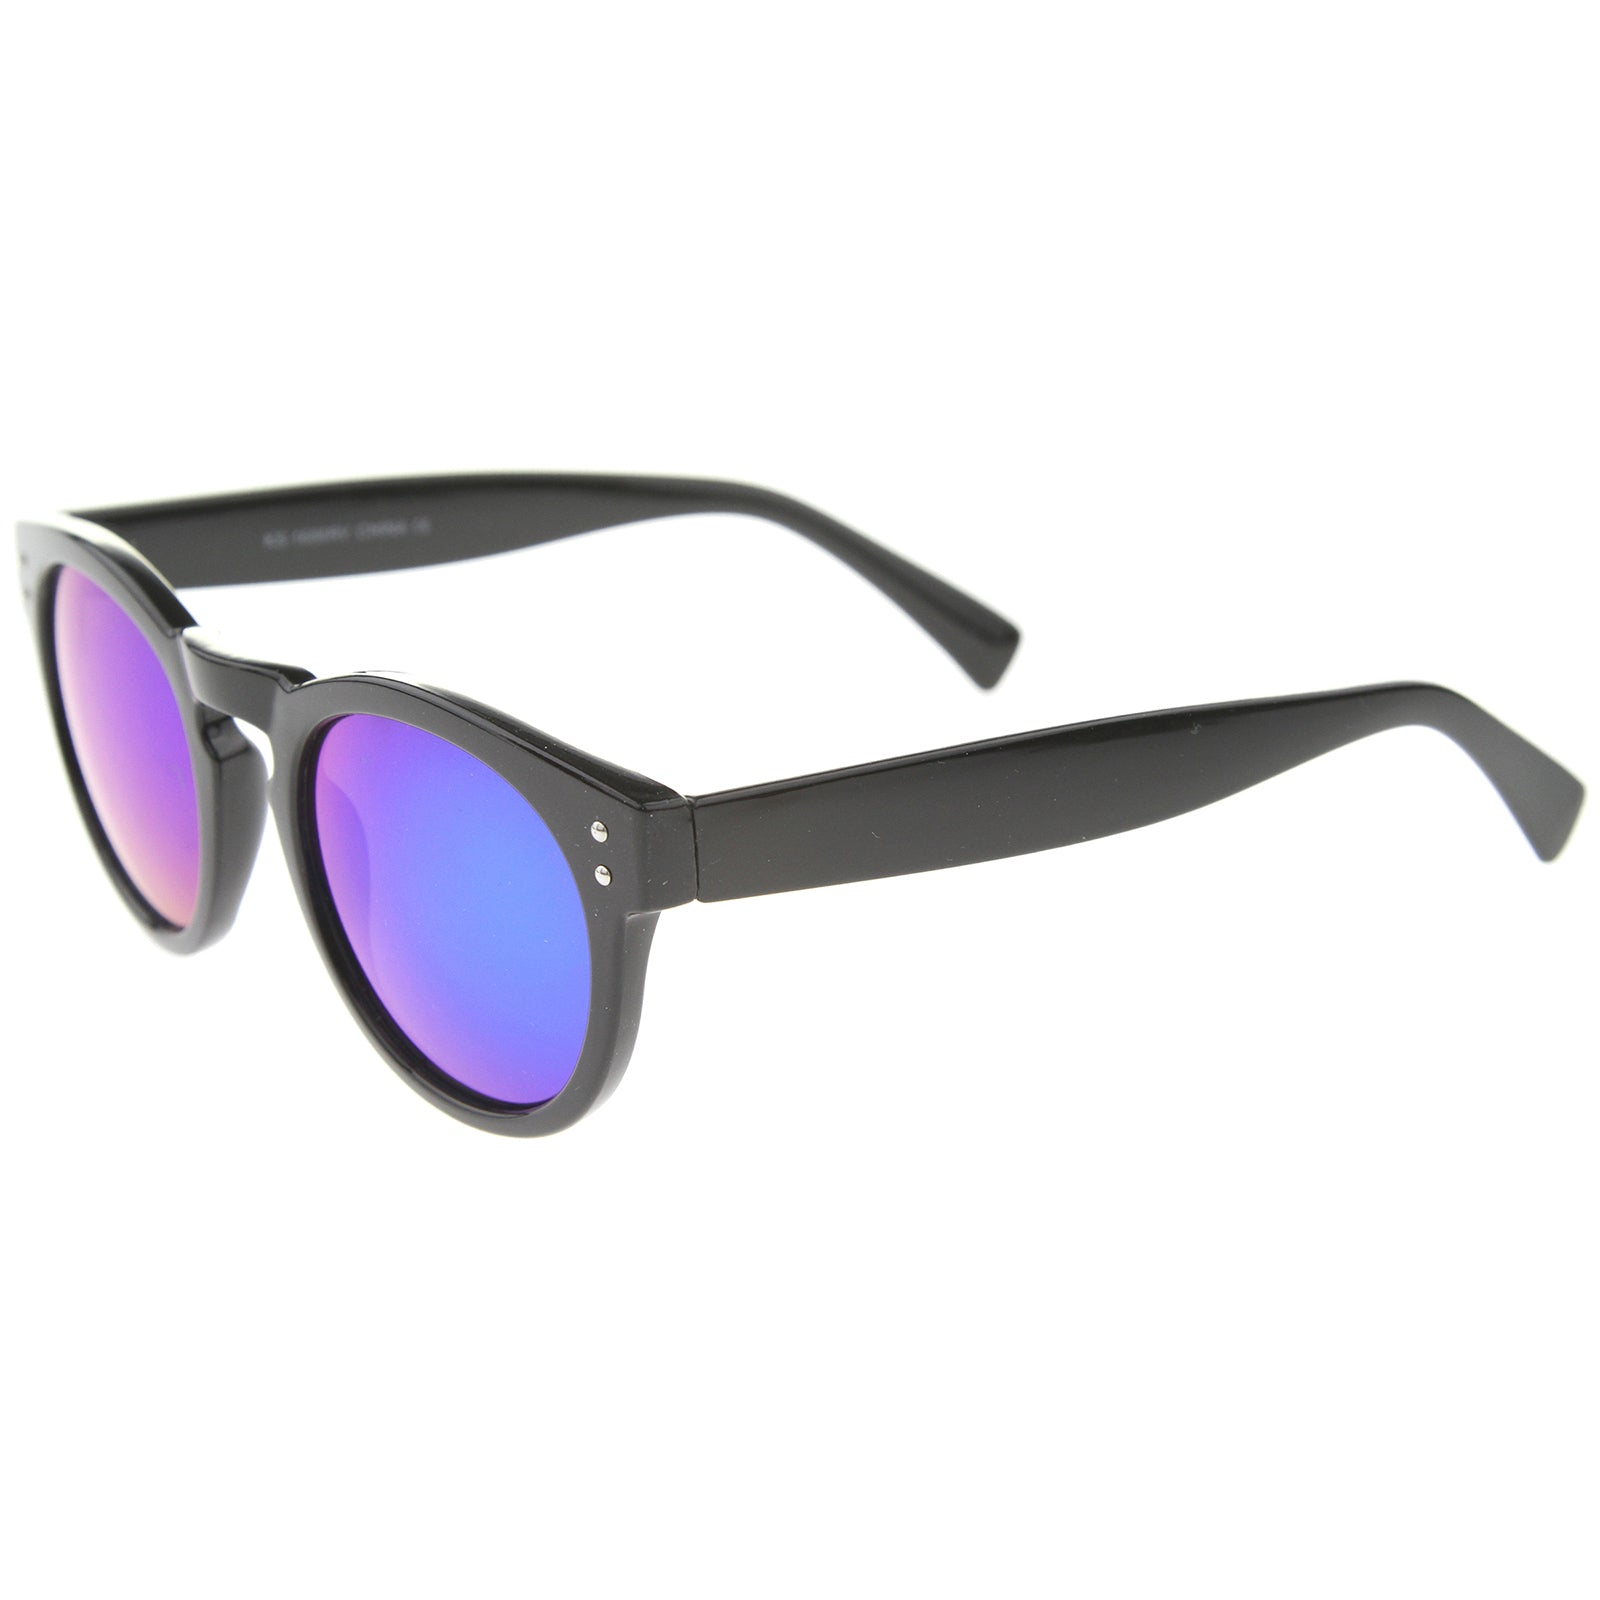 Womens Horn Rimmed Sunglasses With UV400 Protected Mirrored Lens - sunglass.la - 11